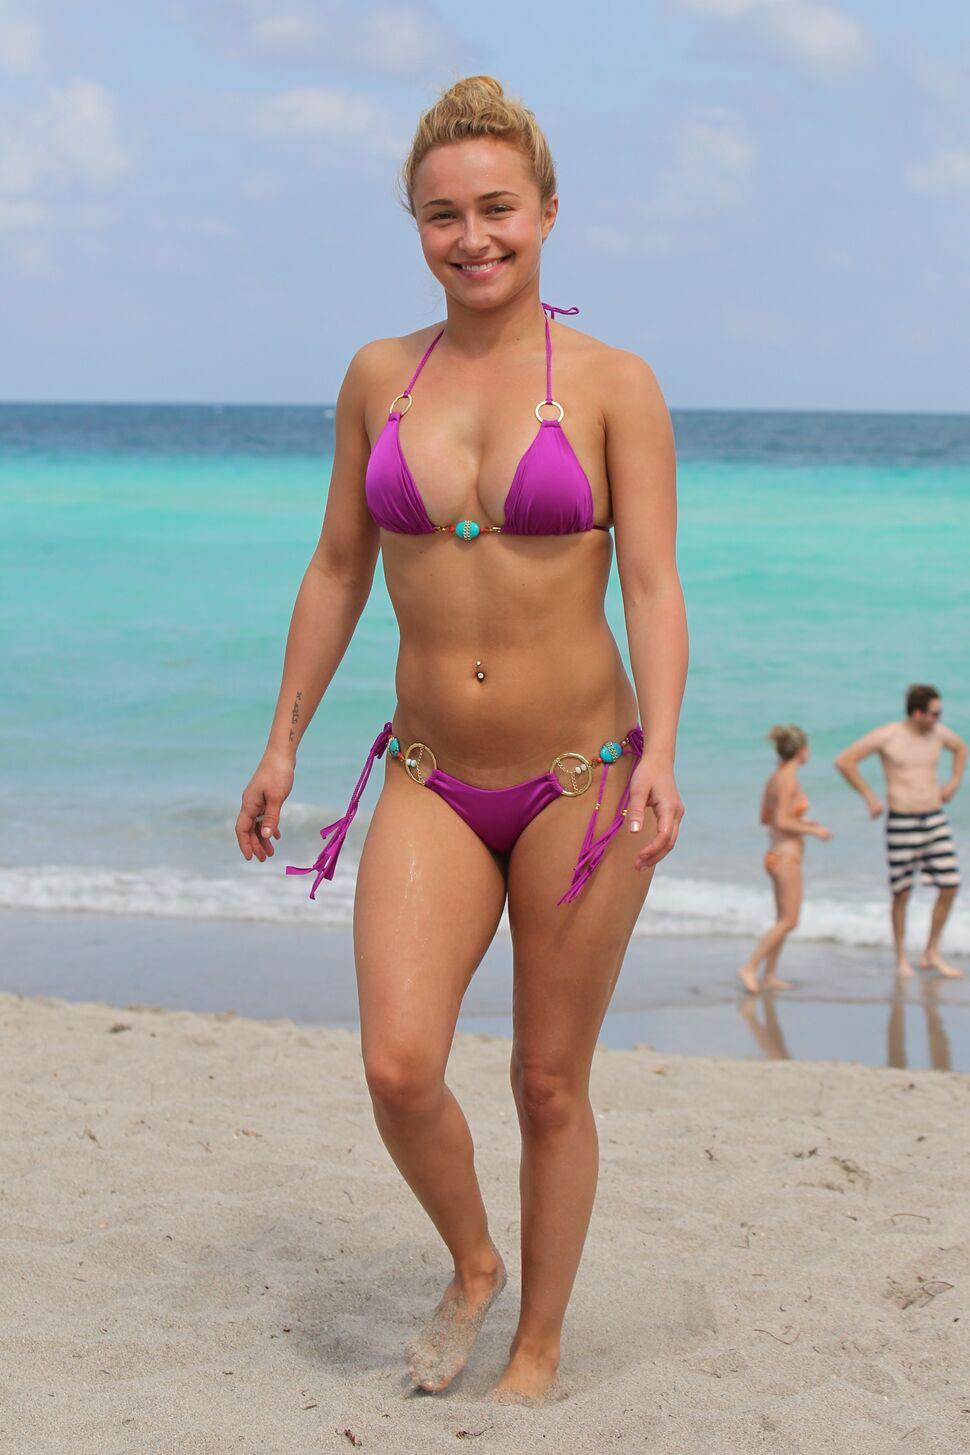 hayden-panettiere-topless-at-the-beach-take-it-easy-on-her-ass